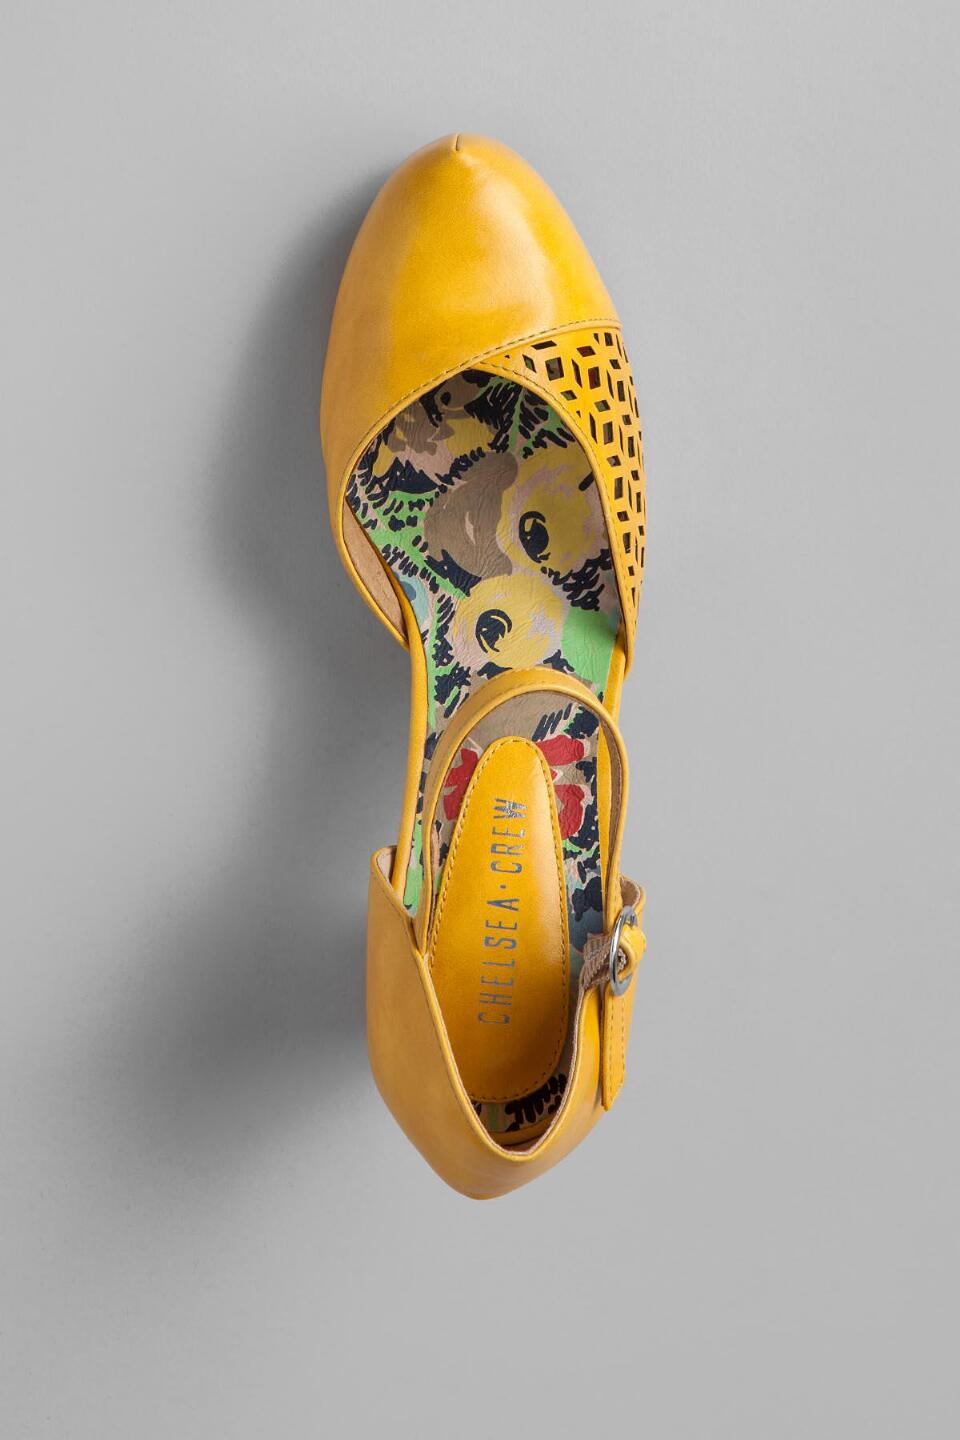 Chelsea Crew Shoes, Turk Cutout Pump in Yellow-  yllw-cltop